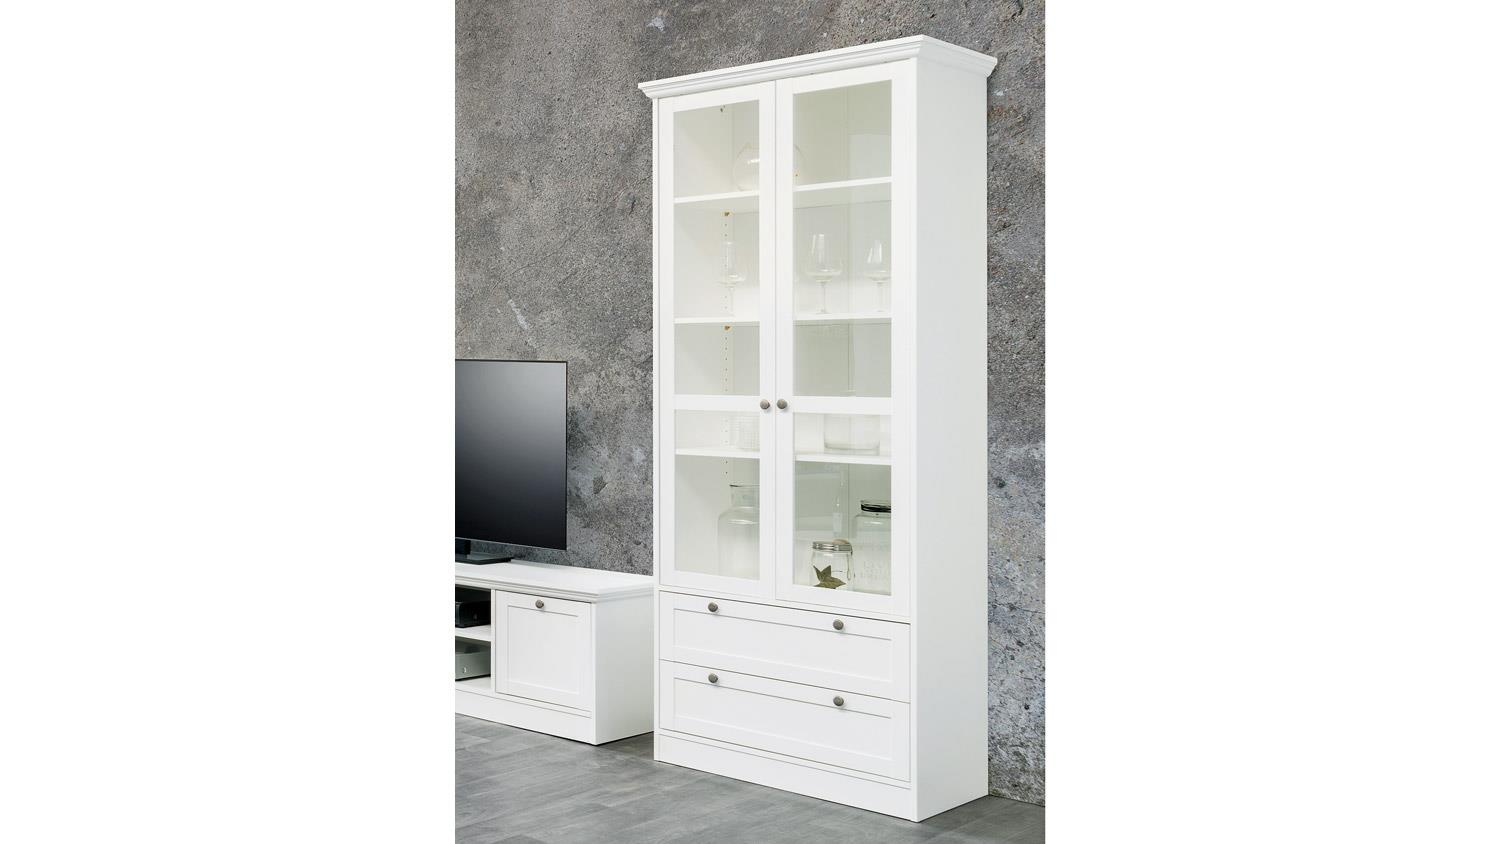 vitrine landwood in wei 2 schubk sten landhausstil. Black Bedroom Furniture Sets. Home Design Ideas